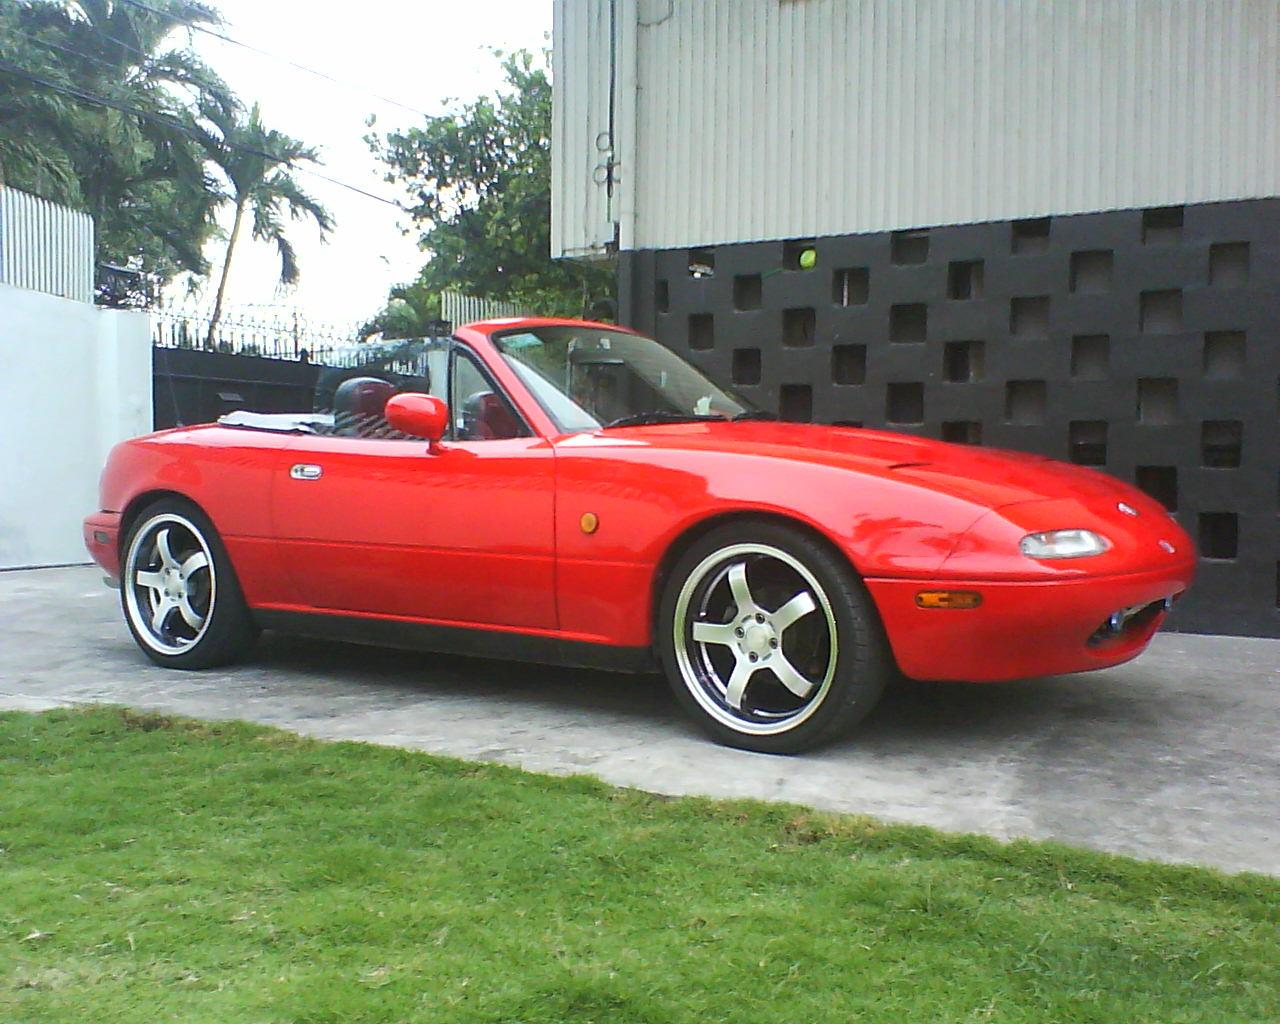 dkiams 1993 mazda miata mx-5 specs, photos, modification info at